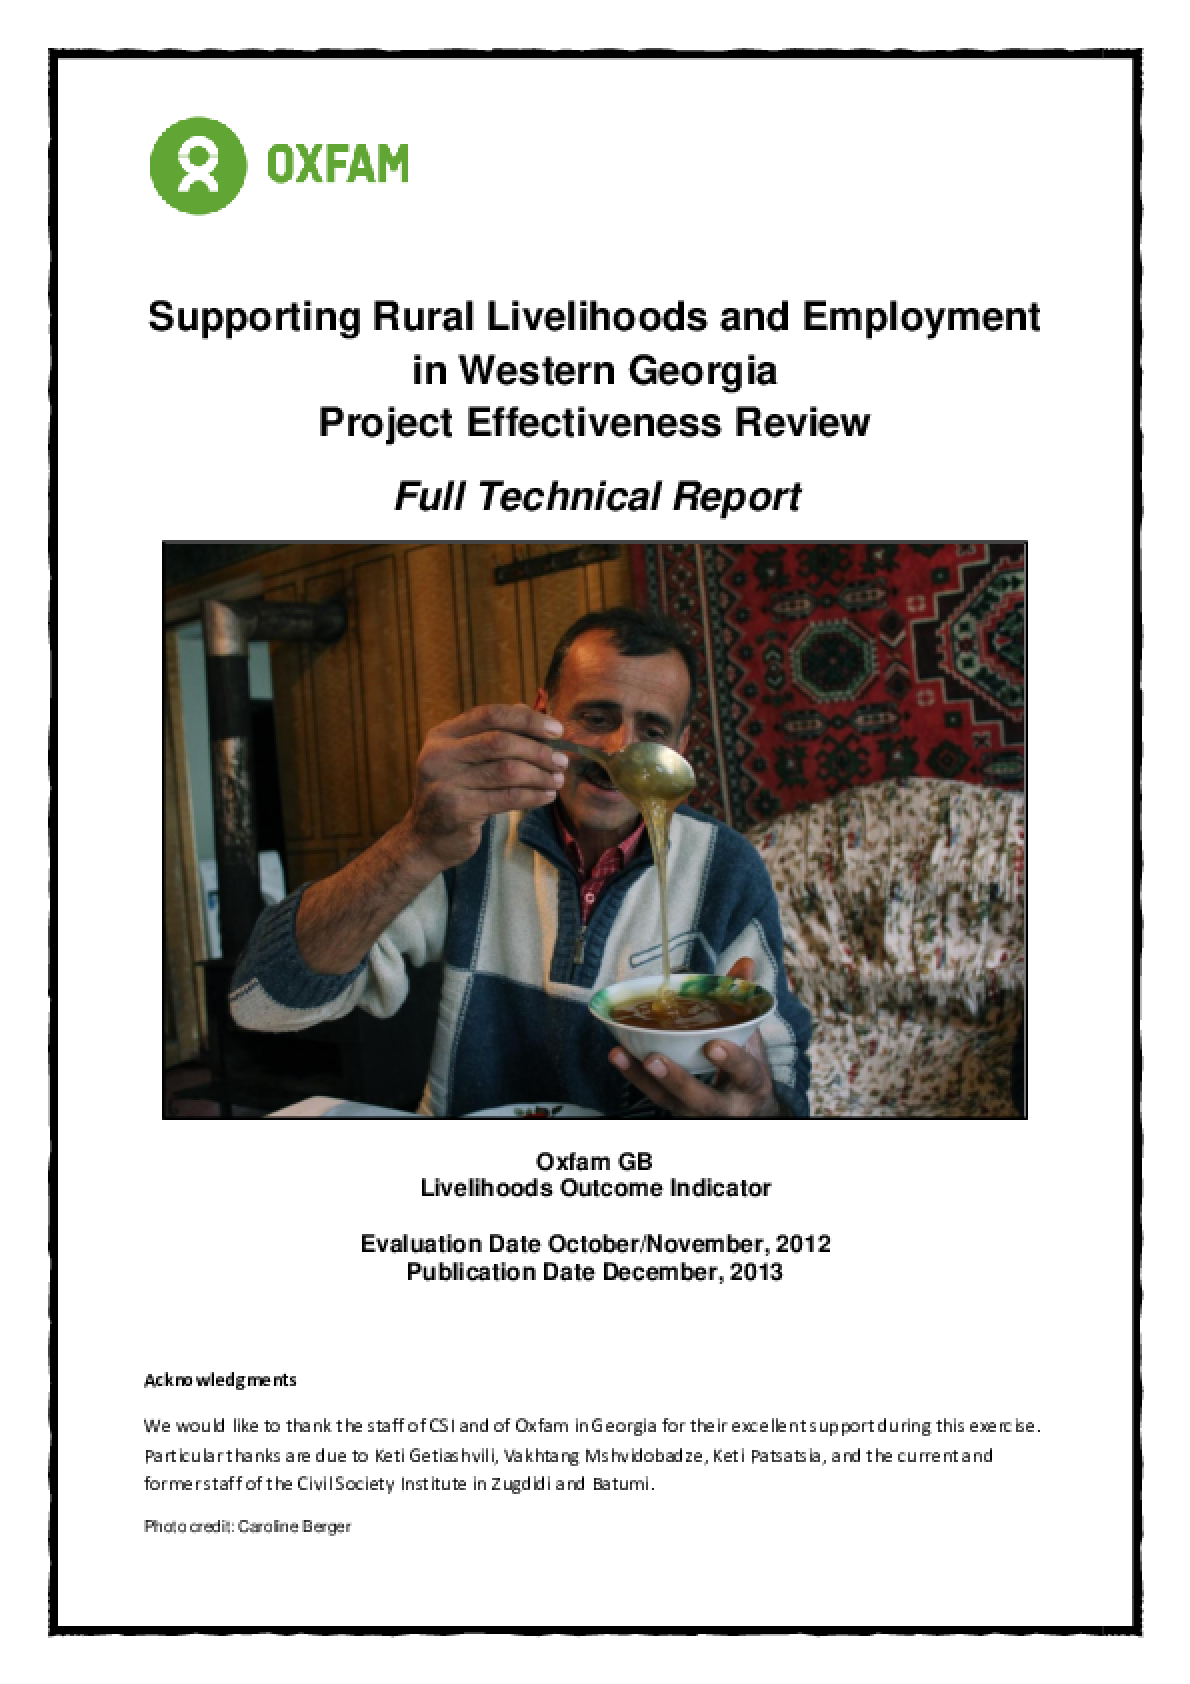 Effectiveness Review: Supporting Rural Livelihoods and Employment in Western Georgia